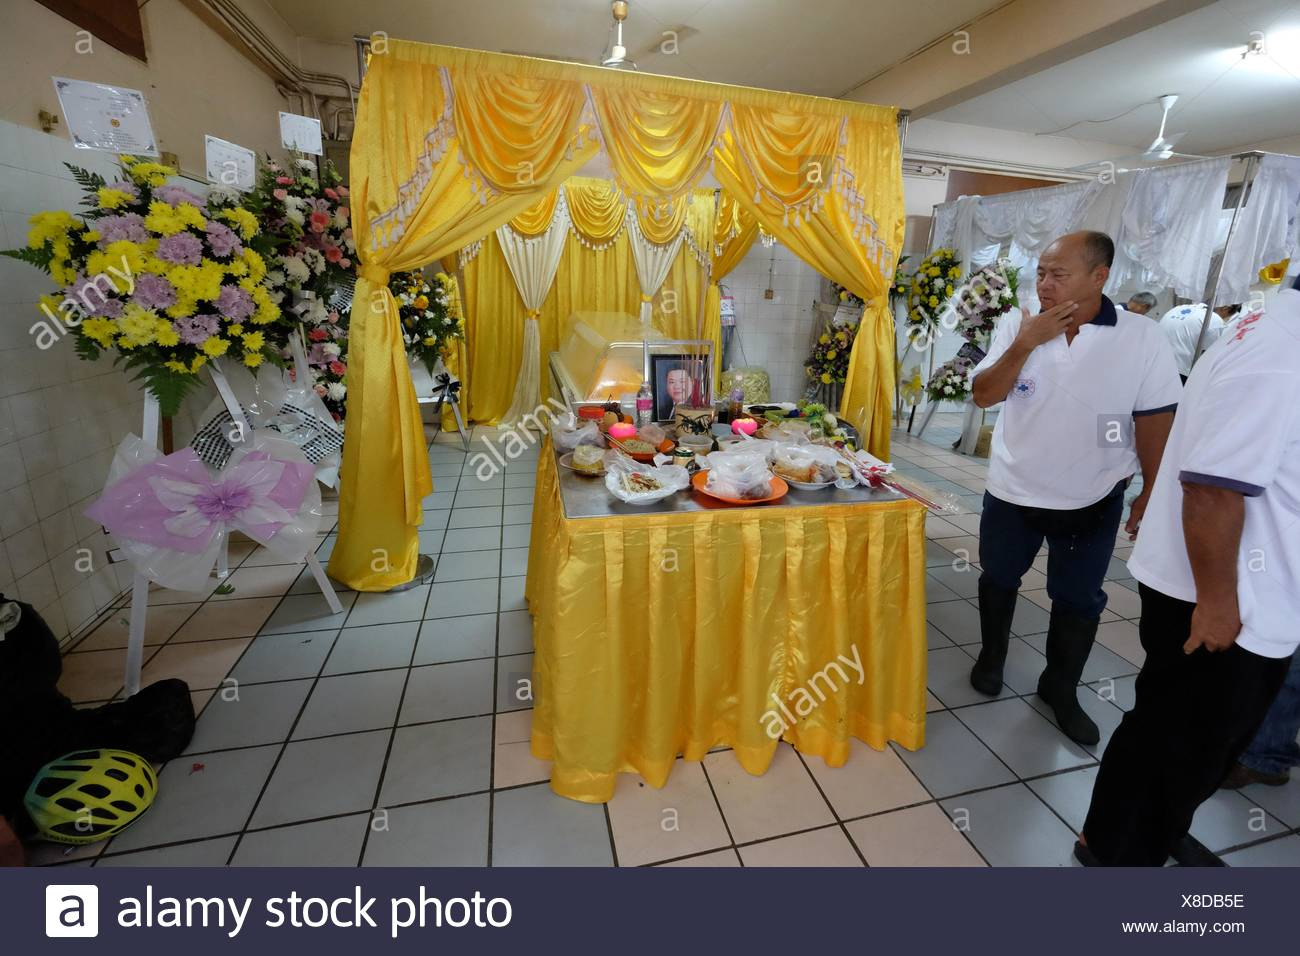 Chinese funeral stock photos chinese funeral stock images alamy sarawakian chinese funeral ceremony malaysia stock image izmirmasajfo